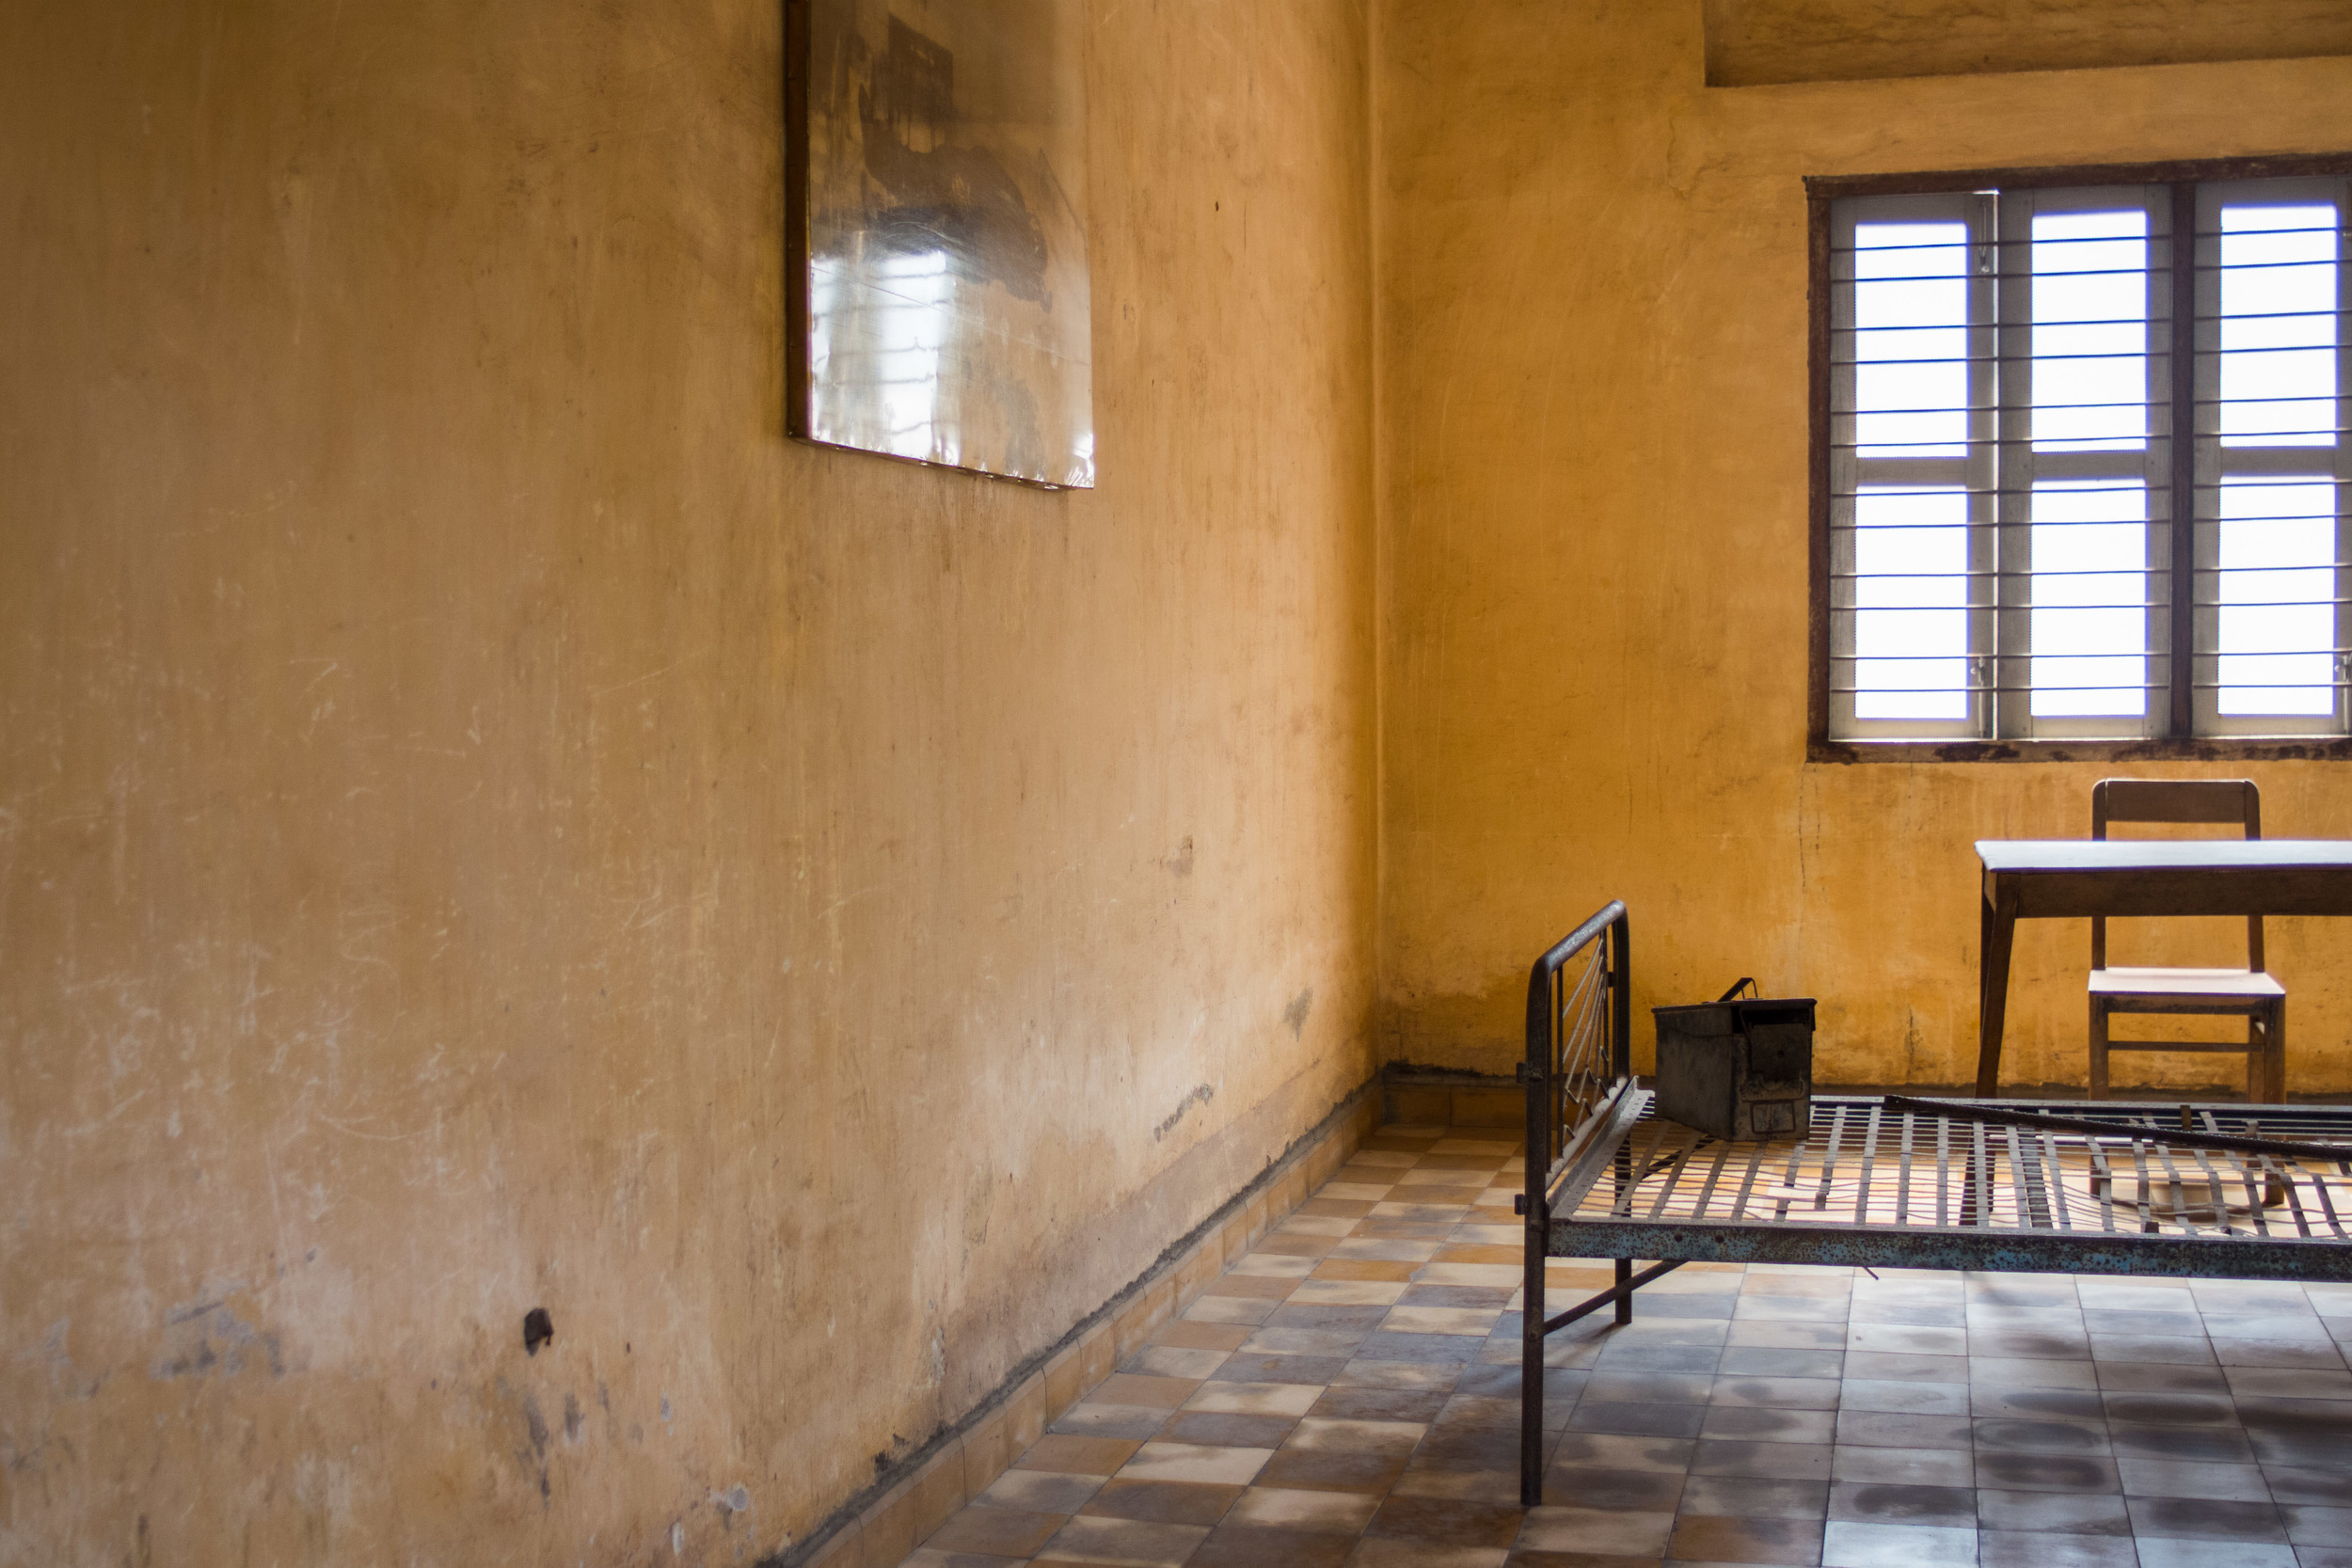 A Khmer Rouge torture room in Phnom Penh, Cambodia